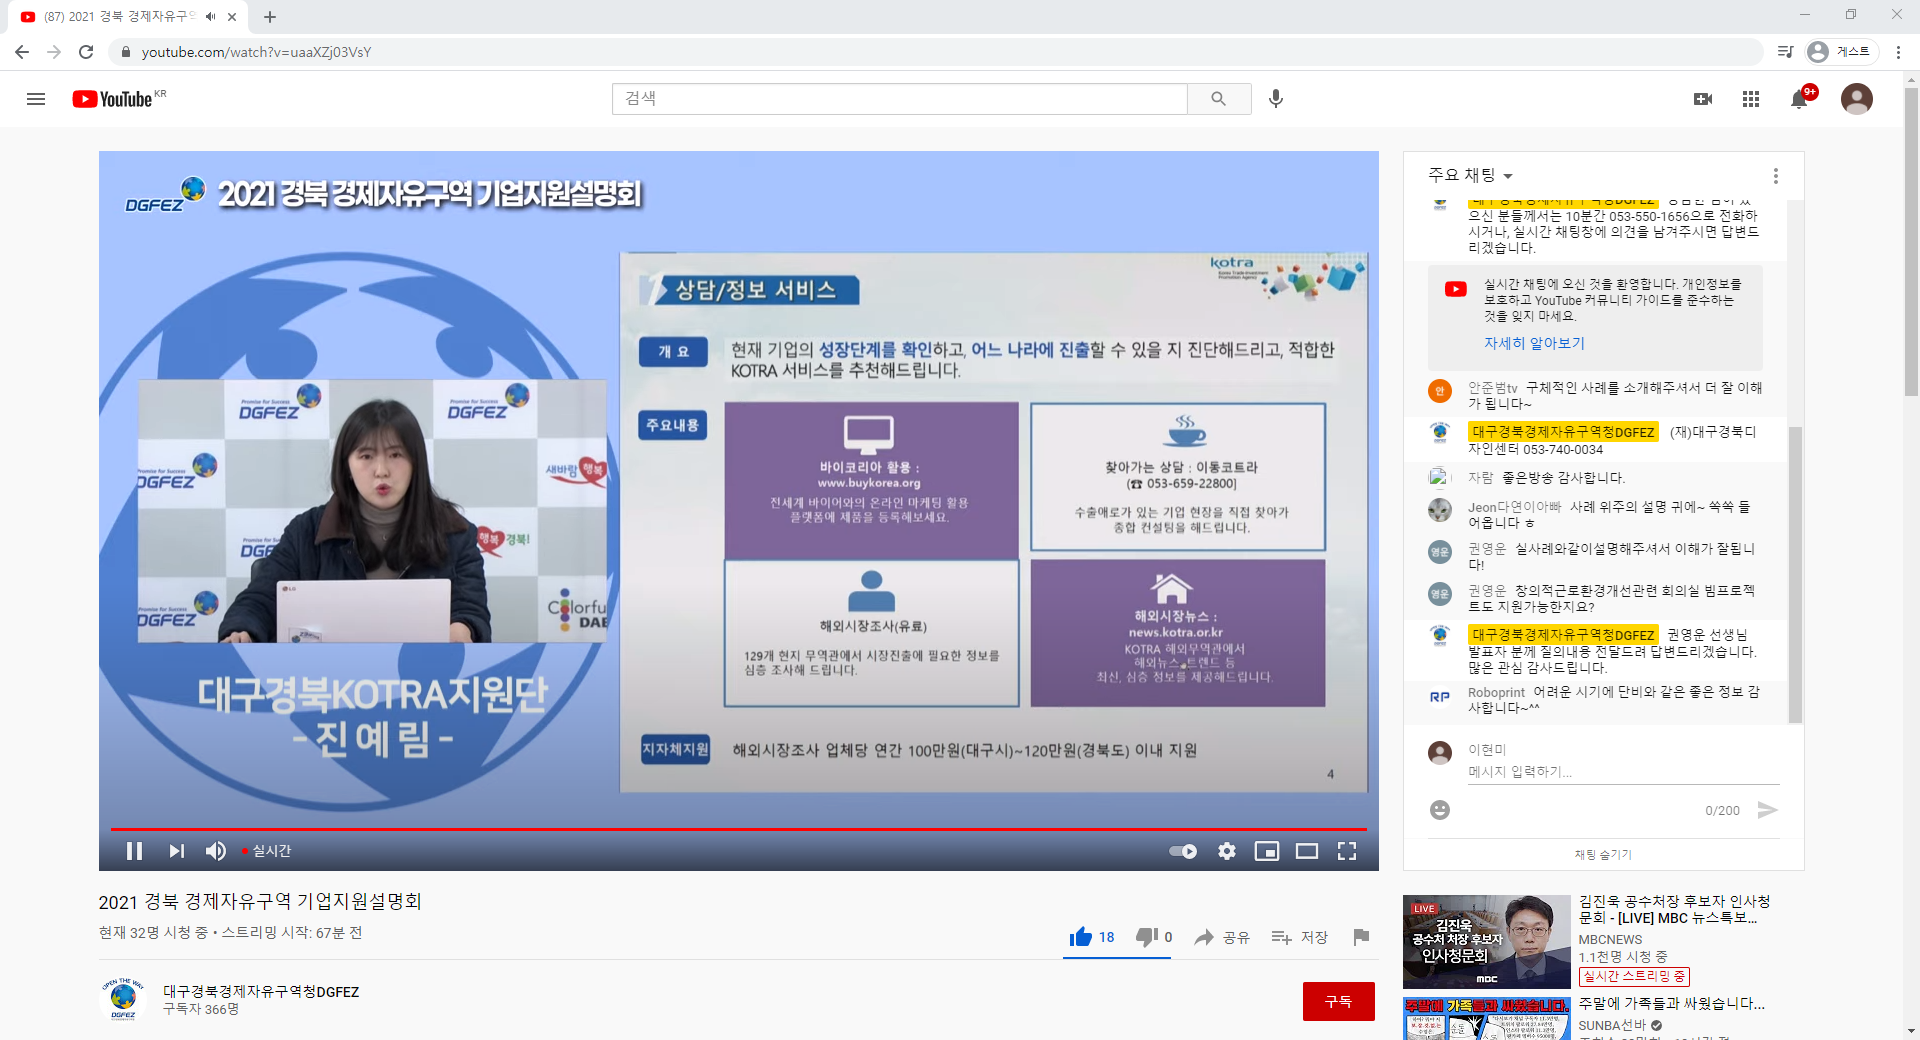 Online Corporate Support Briefing on Youtube